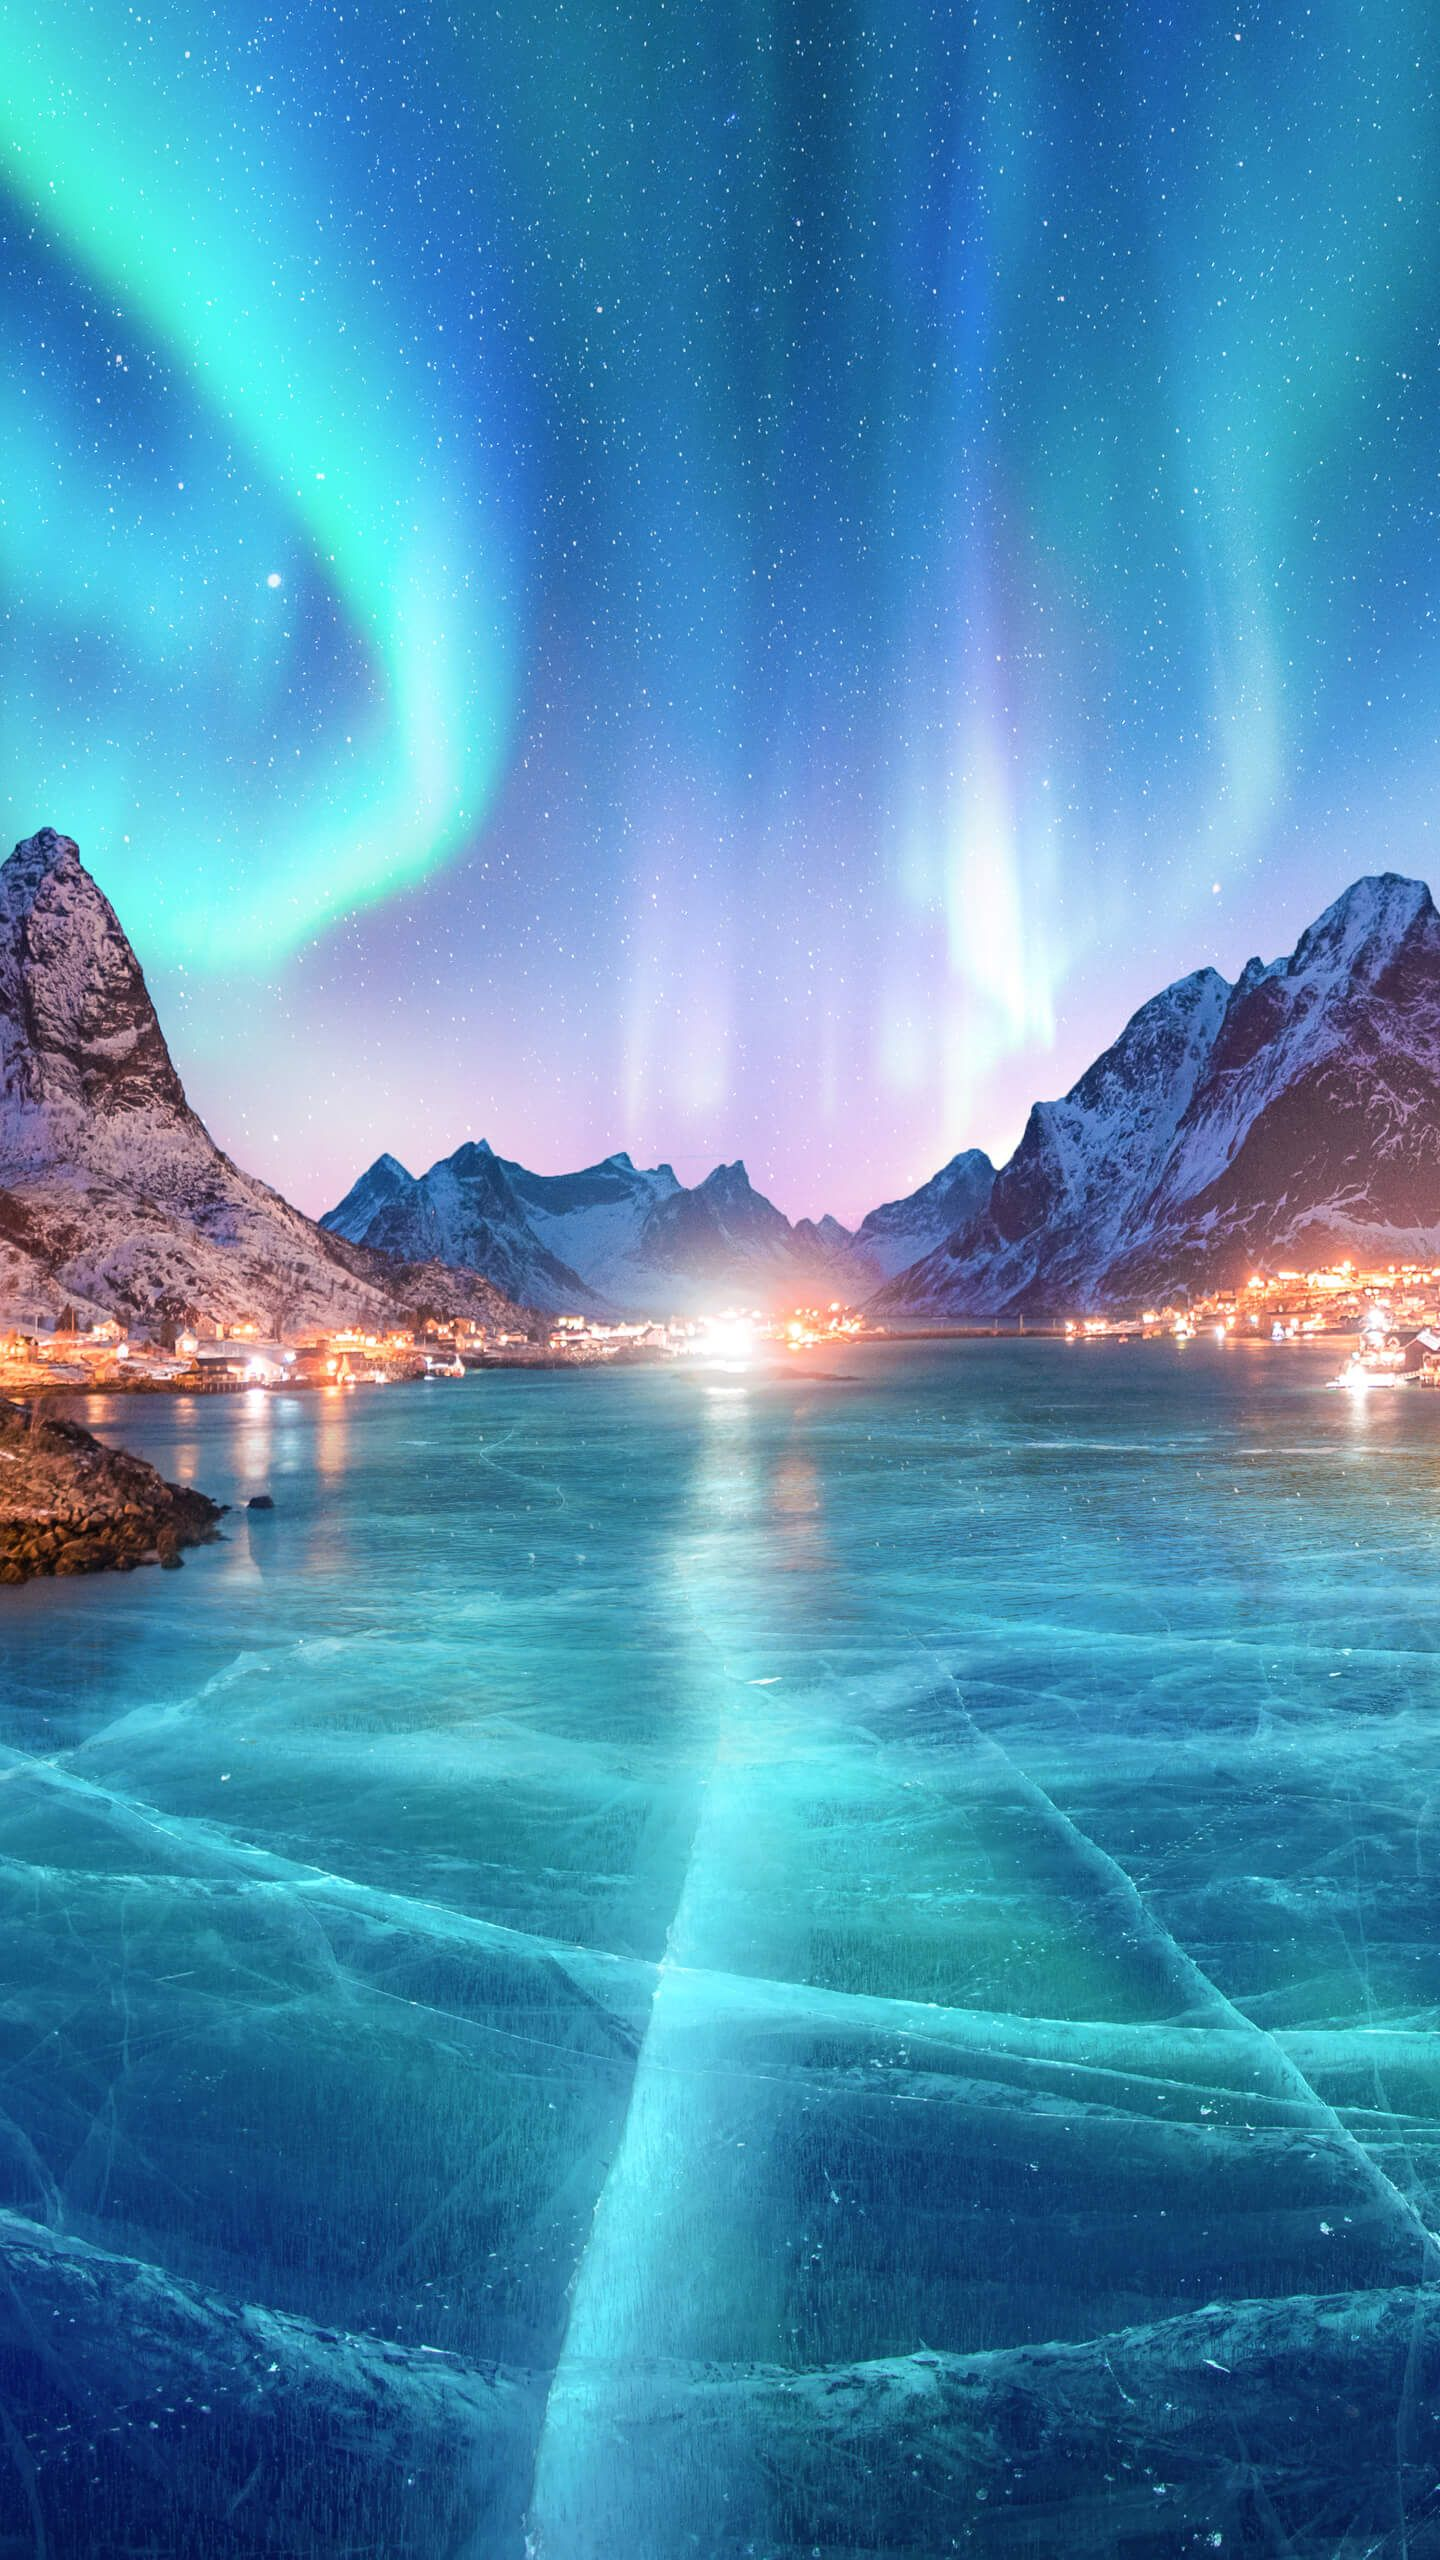 Polar Lights Sky Aurora iPhone Wallpaper 風景, 風景の壁紙